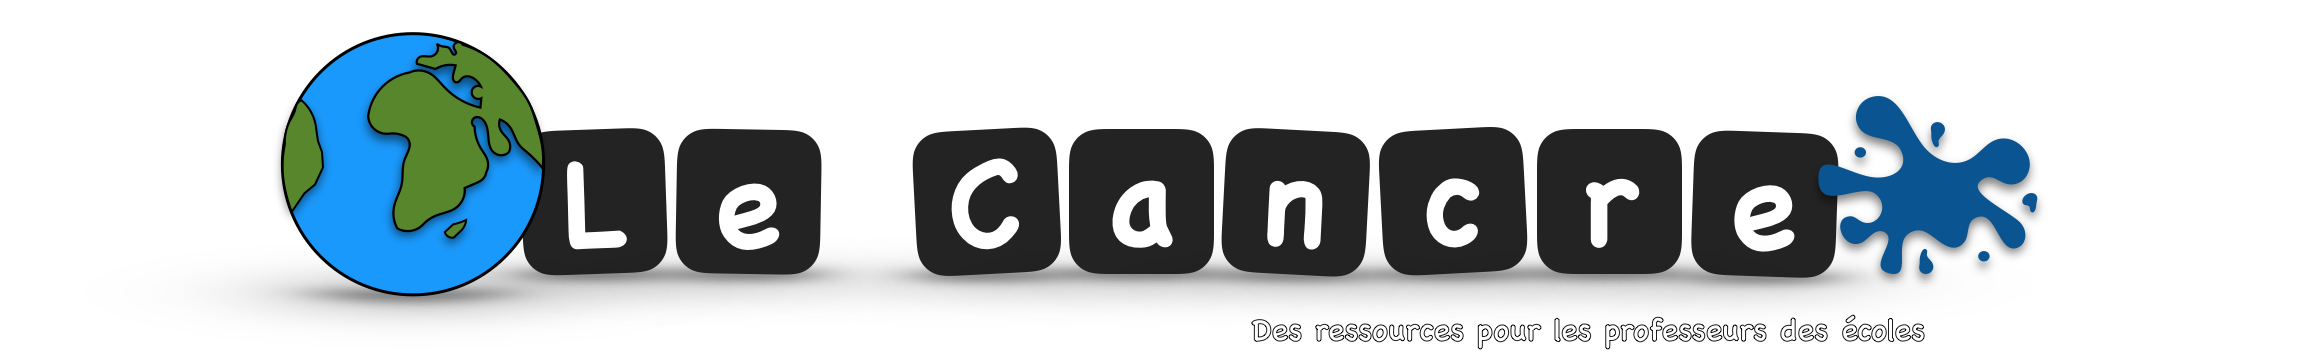 Le blog du Cancre